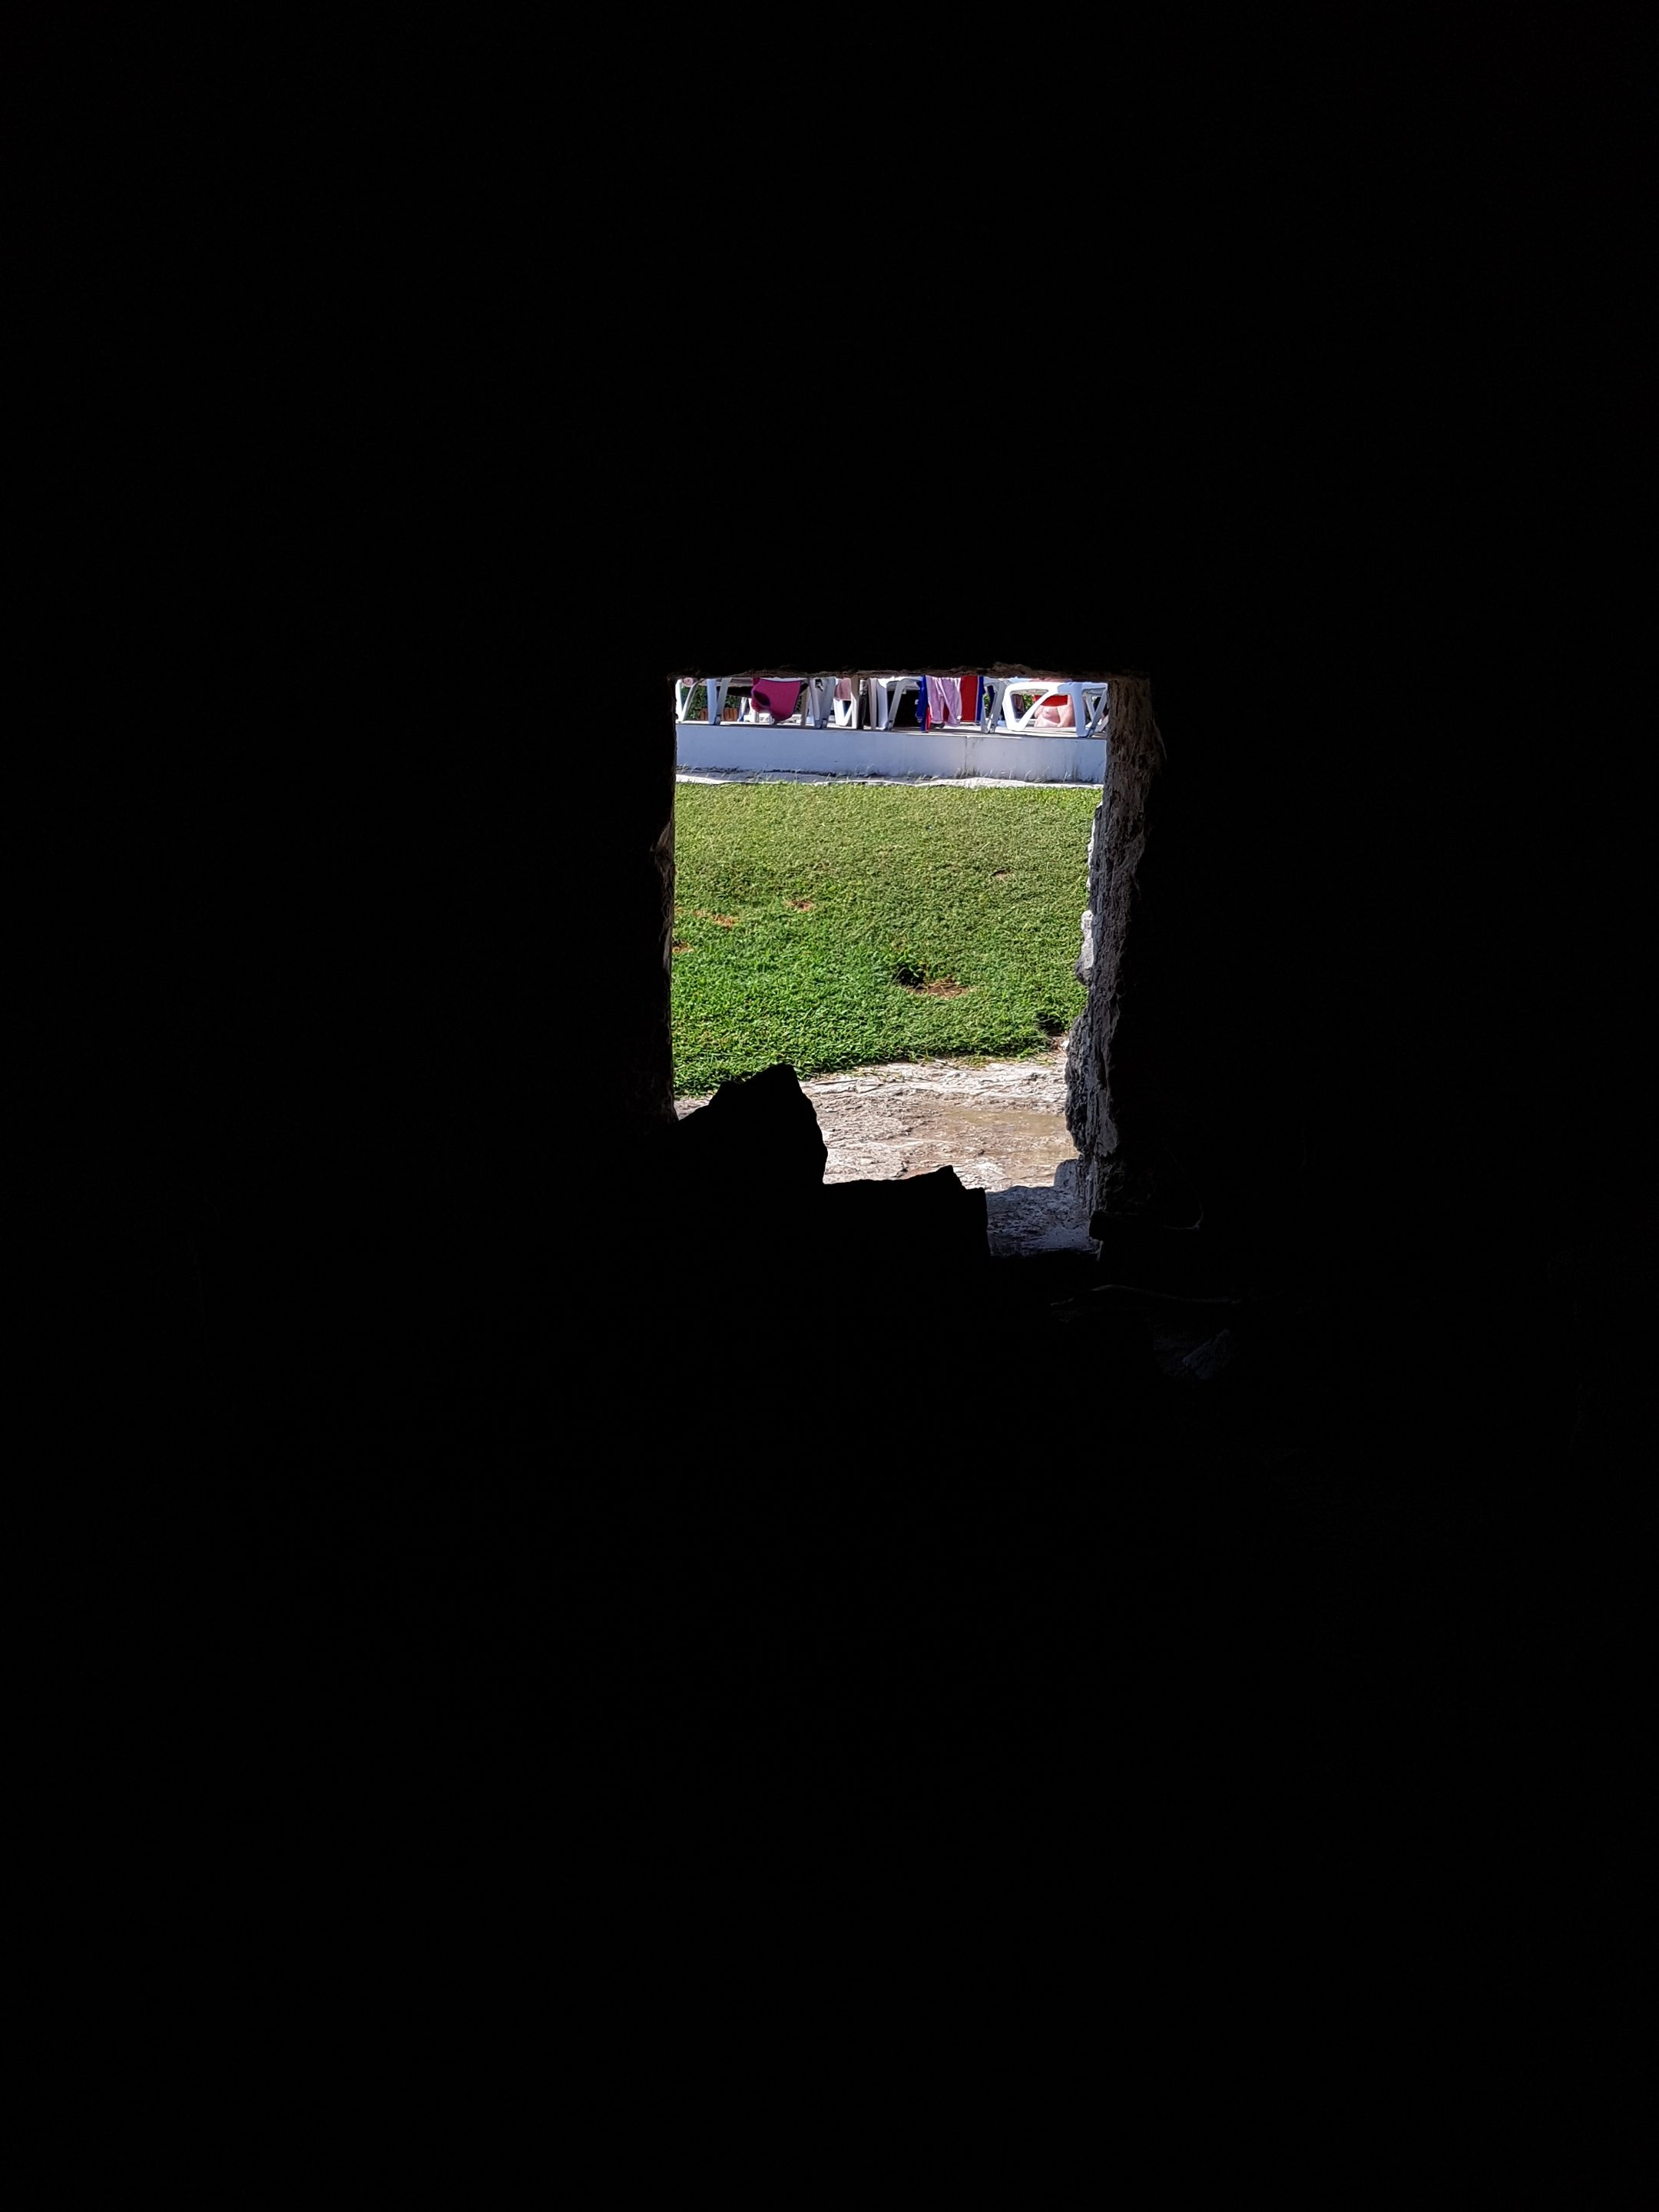 View from inside temazcal , darkness with a small opening showing daylight and grass outside